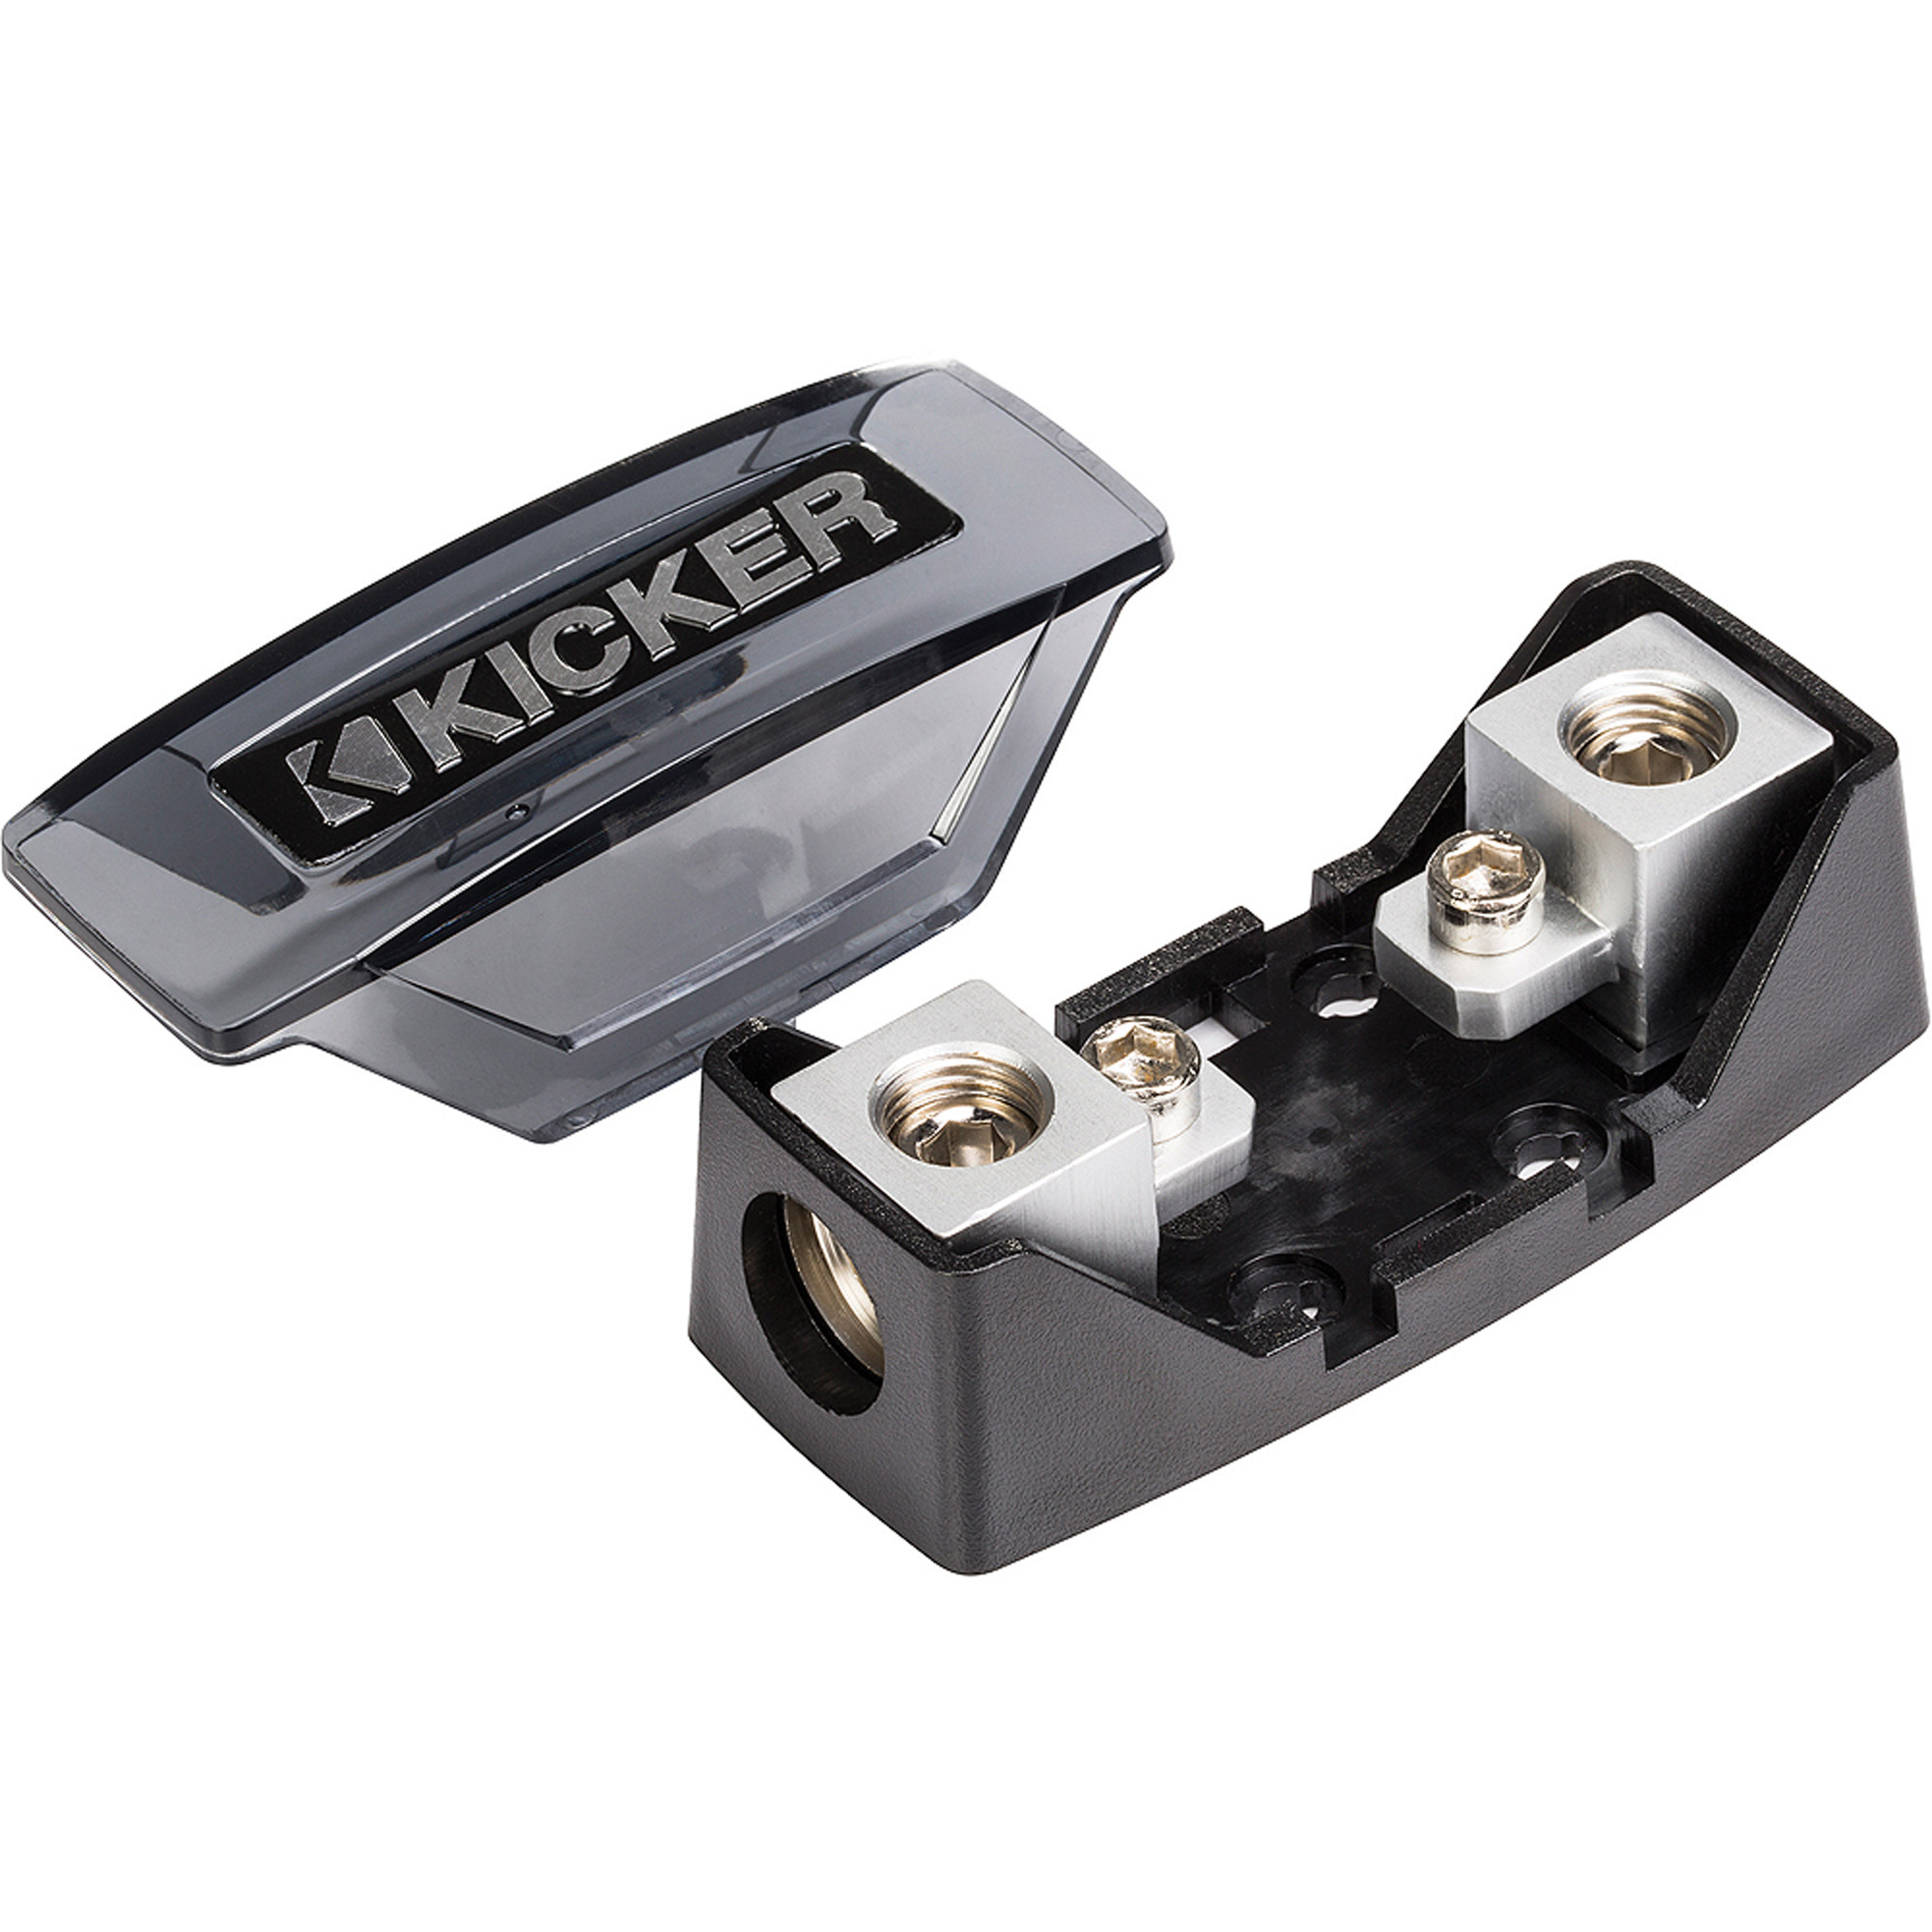 Kicker AFS Fuse Holder with One 1/0-8 Gauge Input and Output